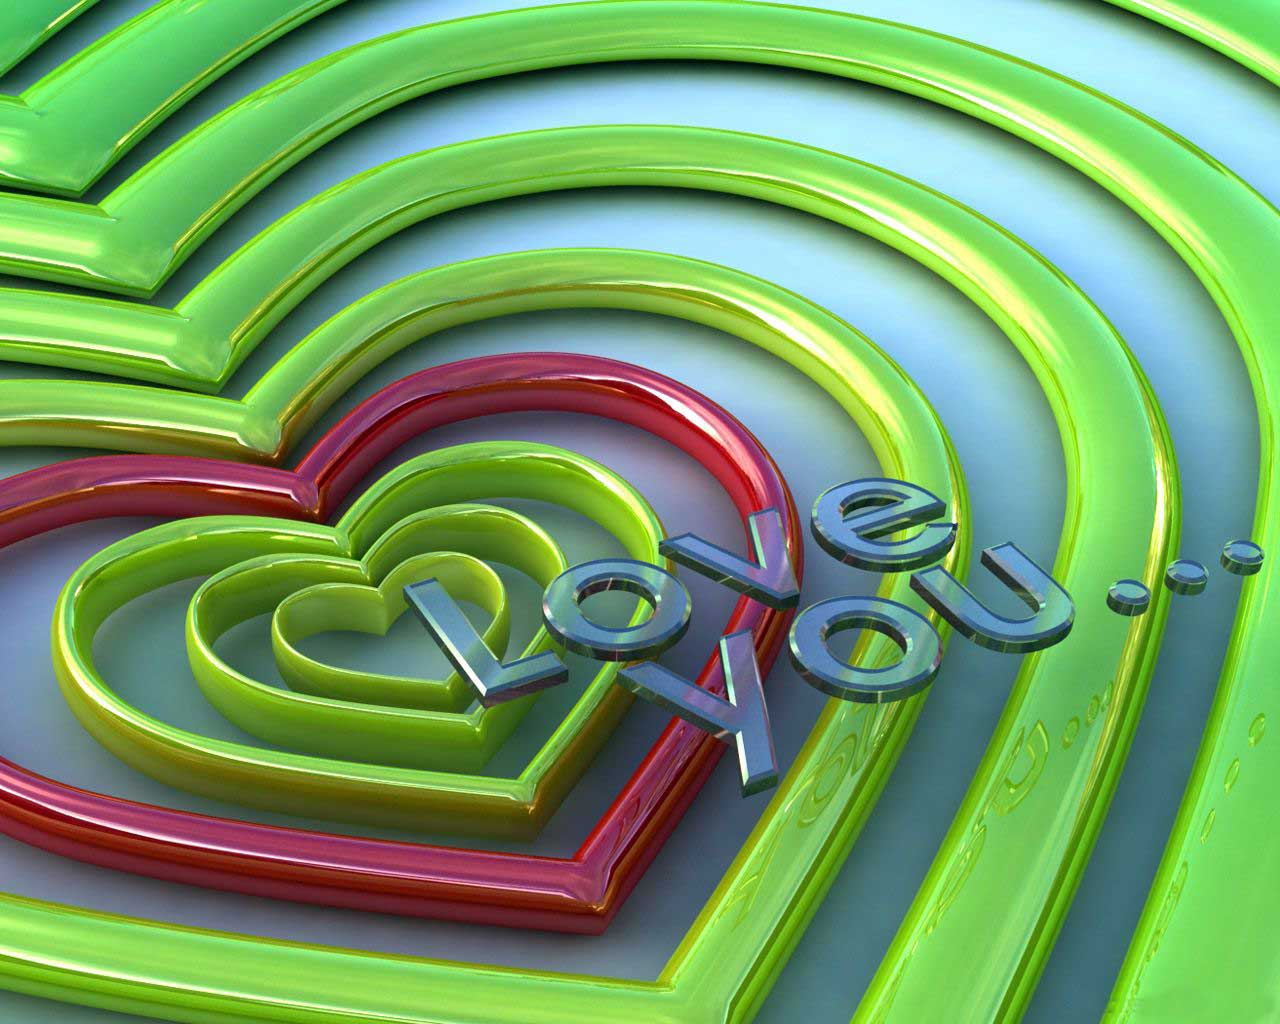 Wallpaper I Love You 3d : Rising In Love: Love 3D